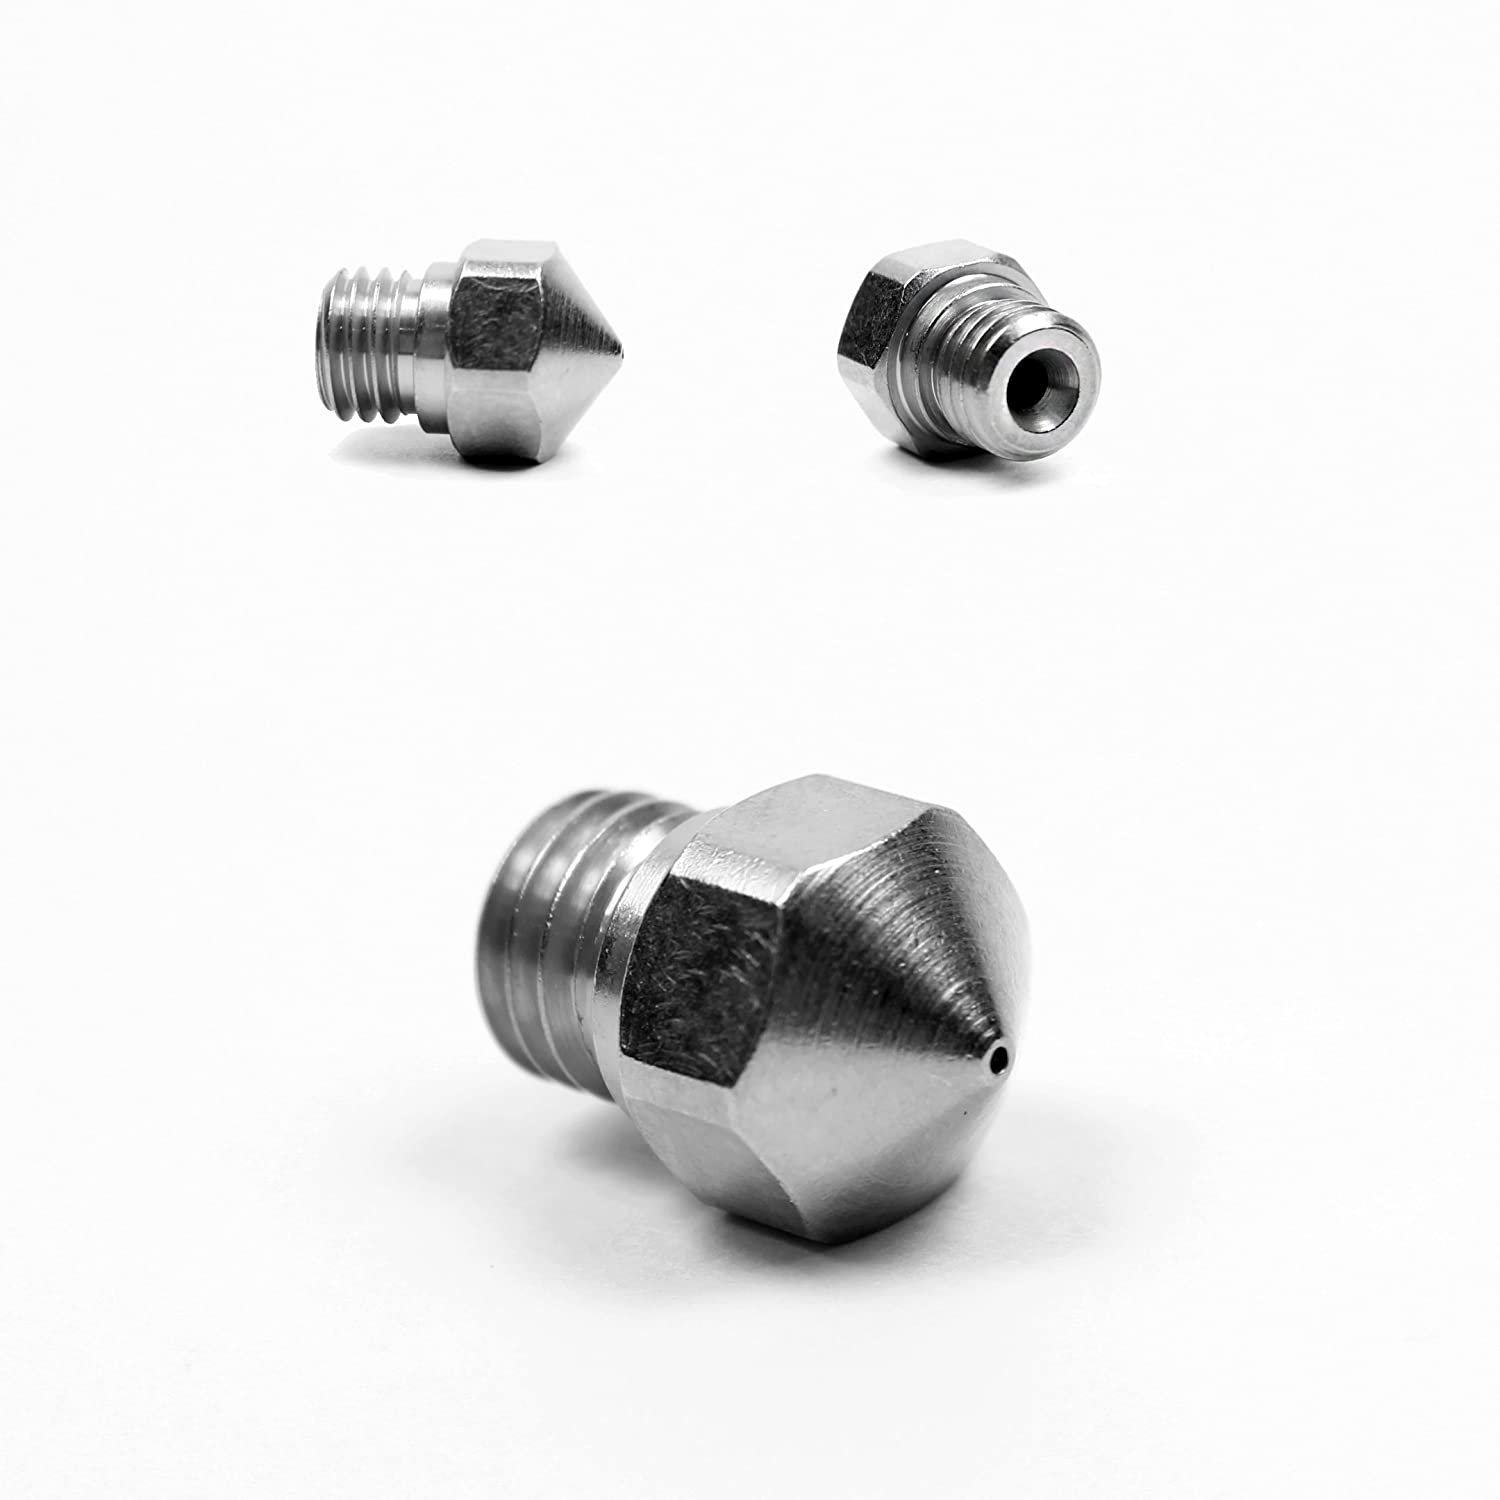 .8mm Nozzle for Micro Swiss MK10 All Metal Hotend Upgrade Kit